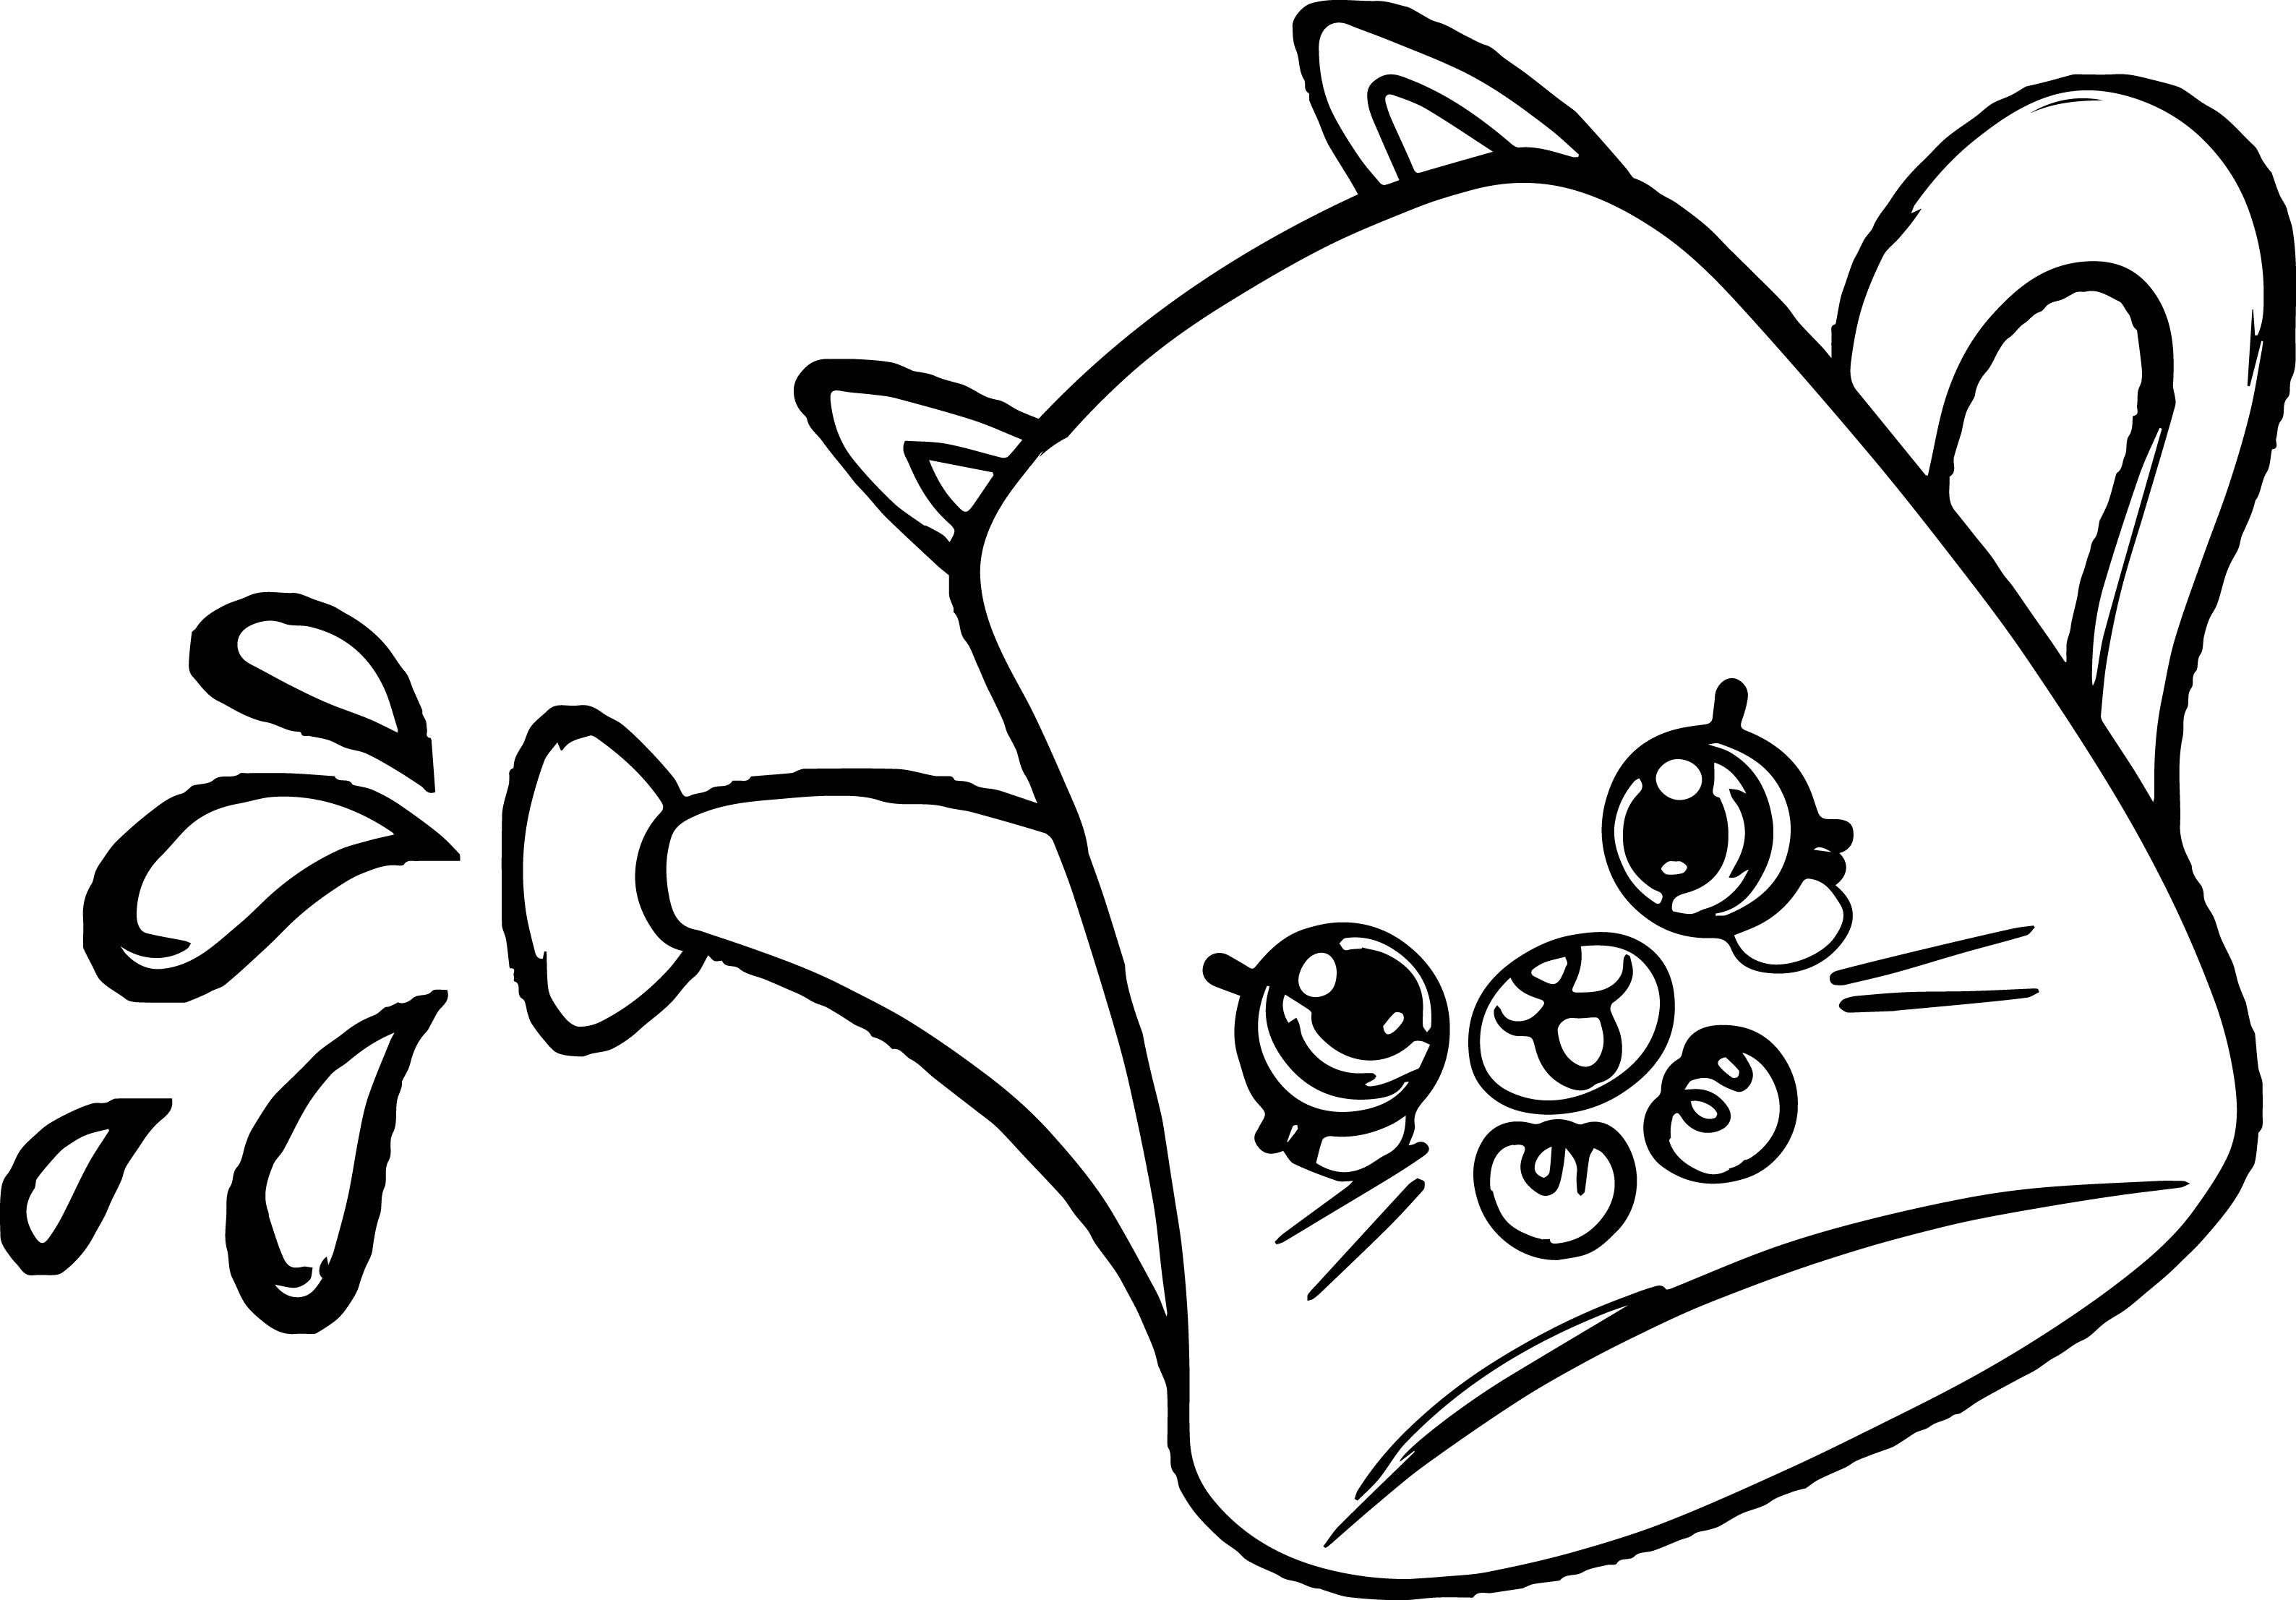 drips shopkins coloring page